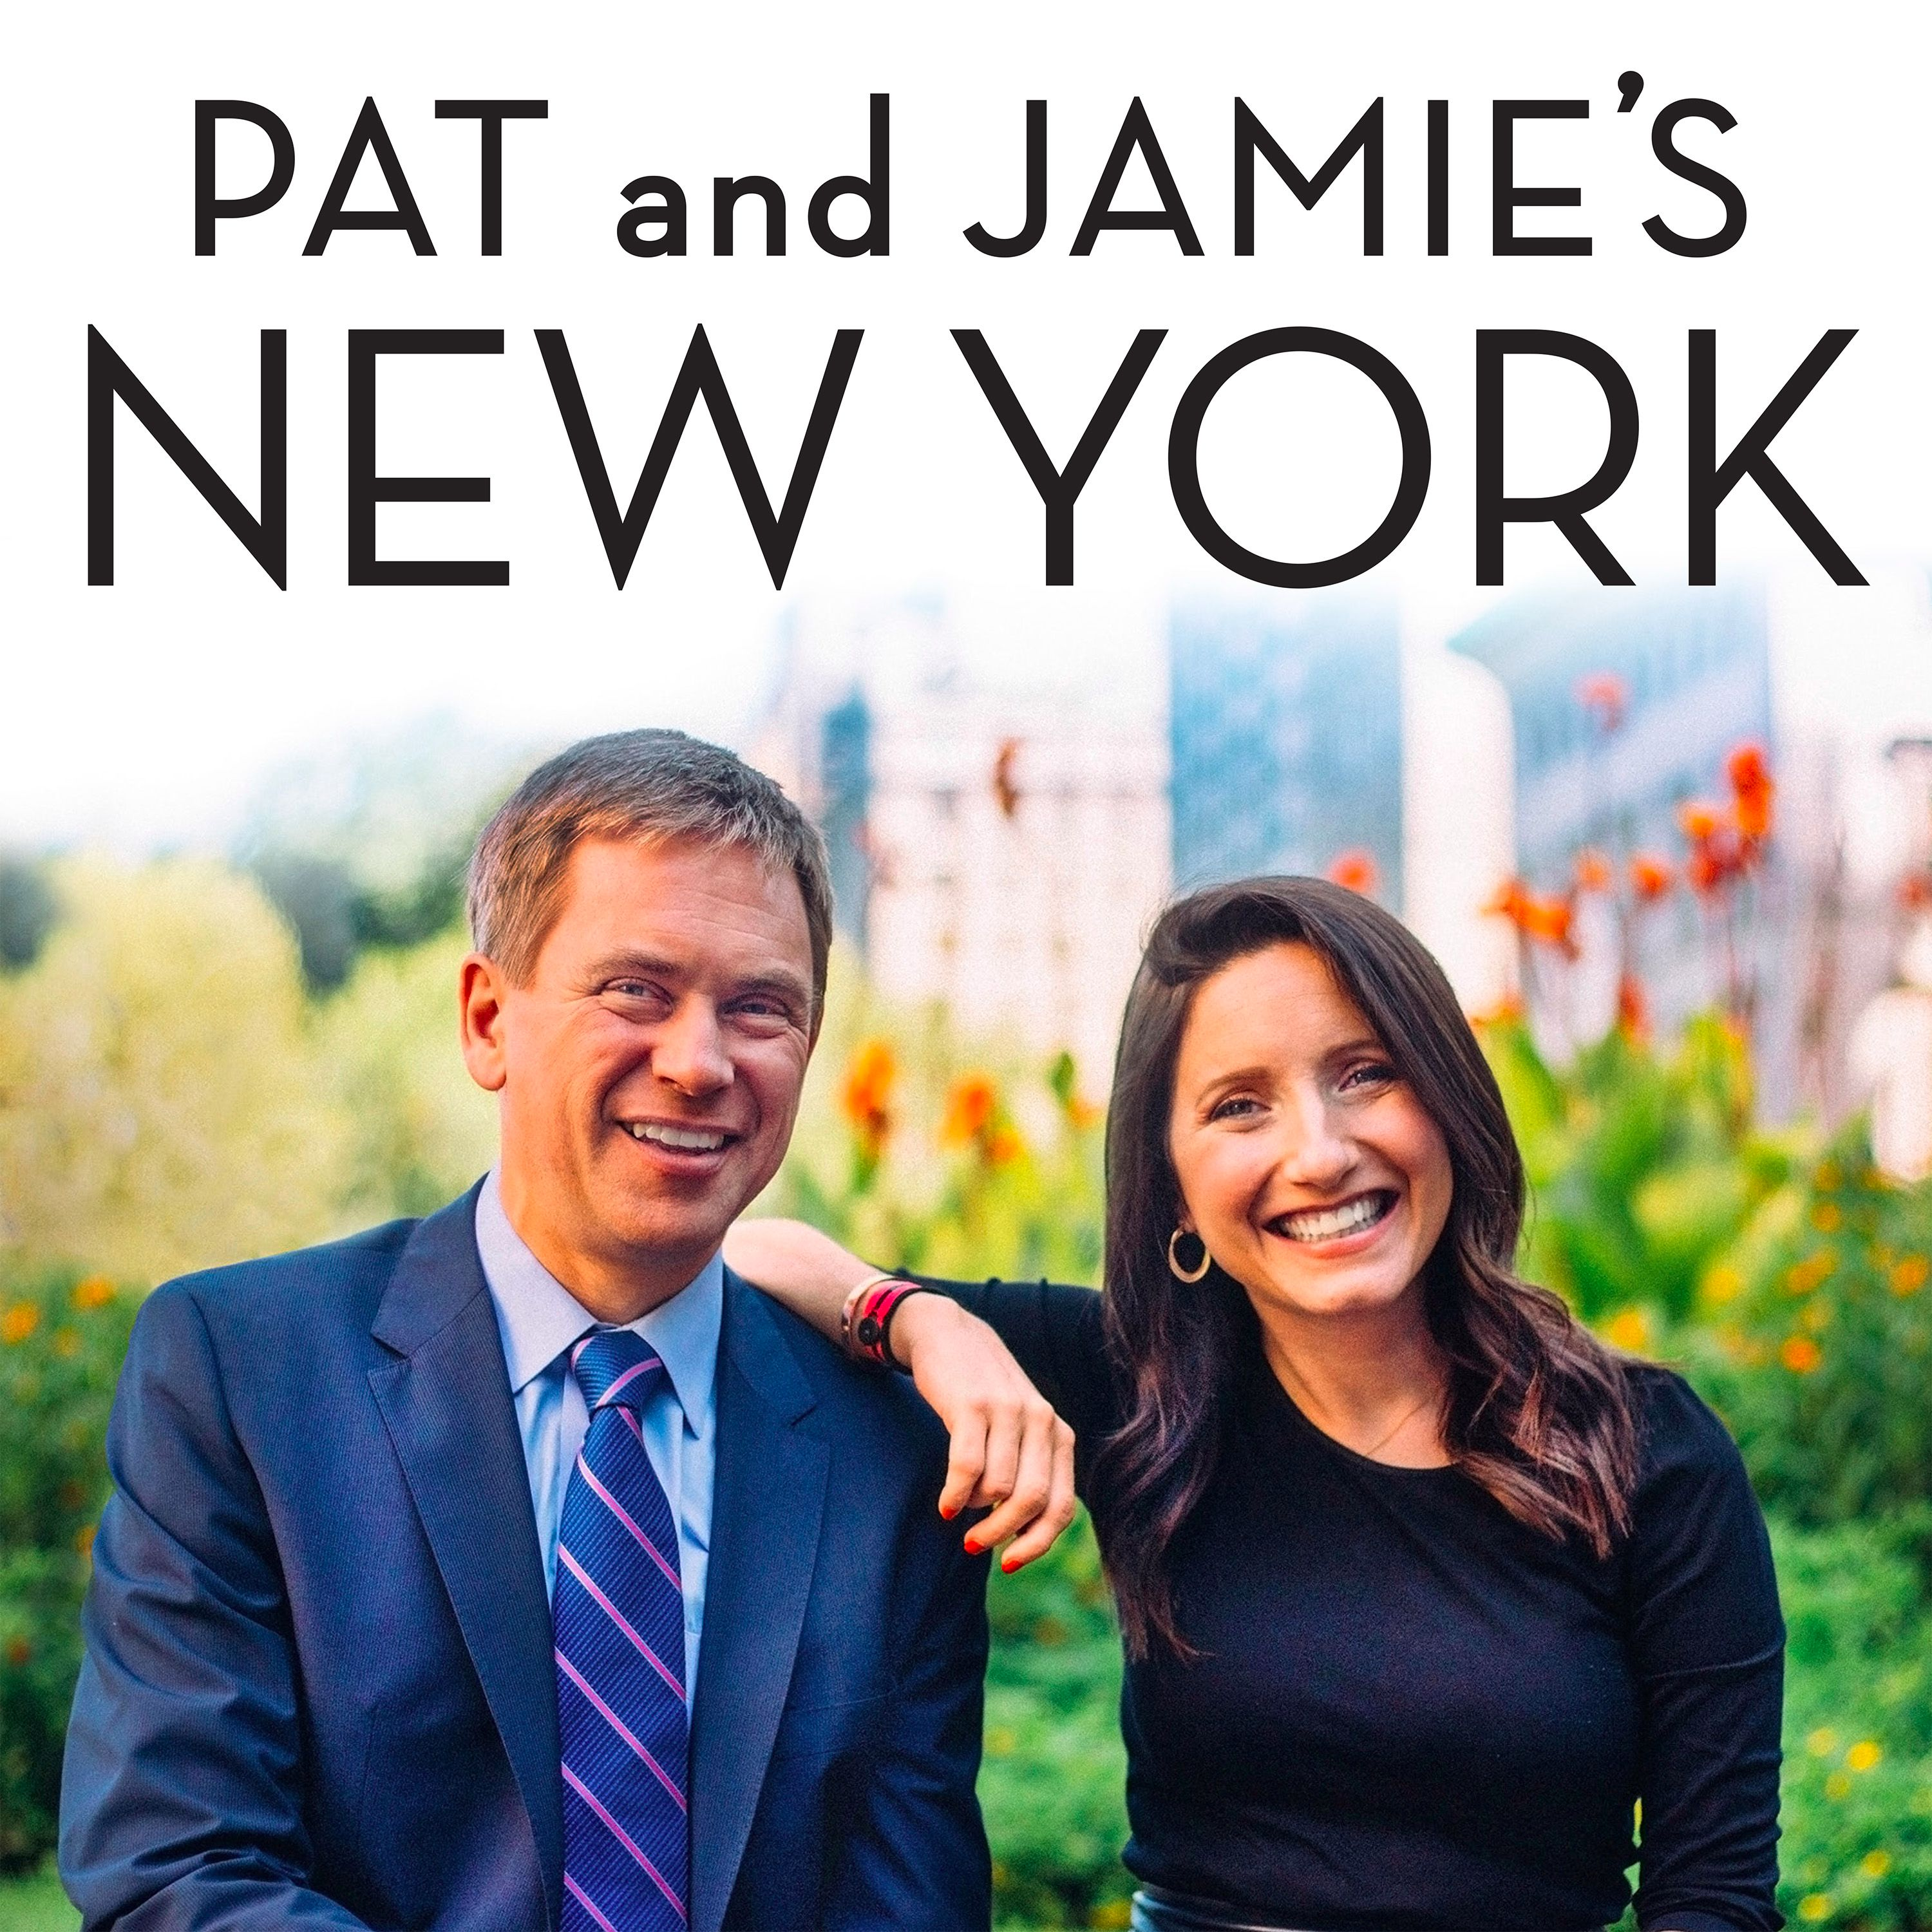 Pat and Jamie's New York